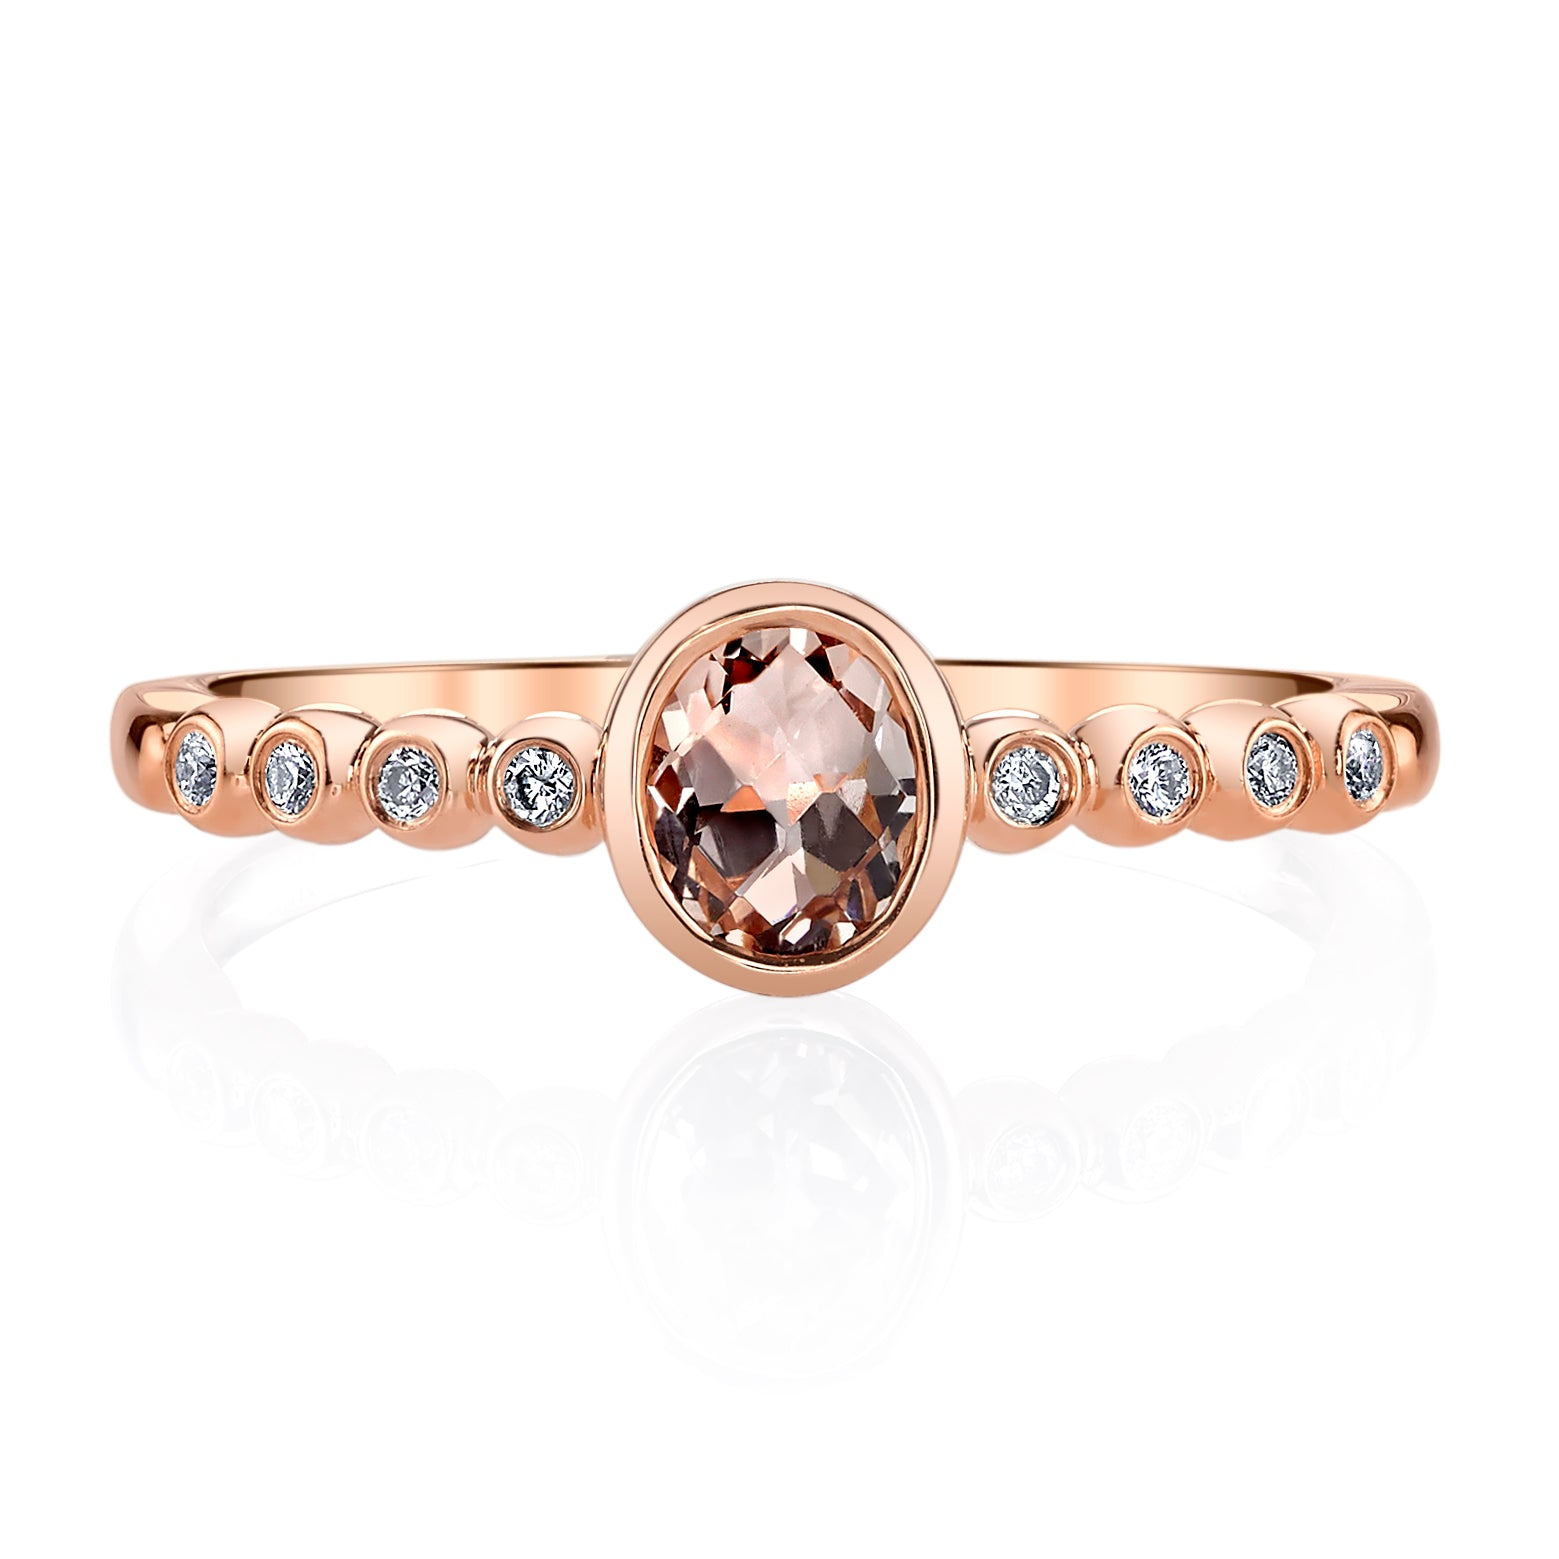 Mars Jewelry 14K Rose Gold Fashion Ring w/ Bezel Set Diamonds & Blush Pink Morganite Stone 26927